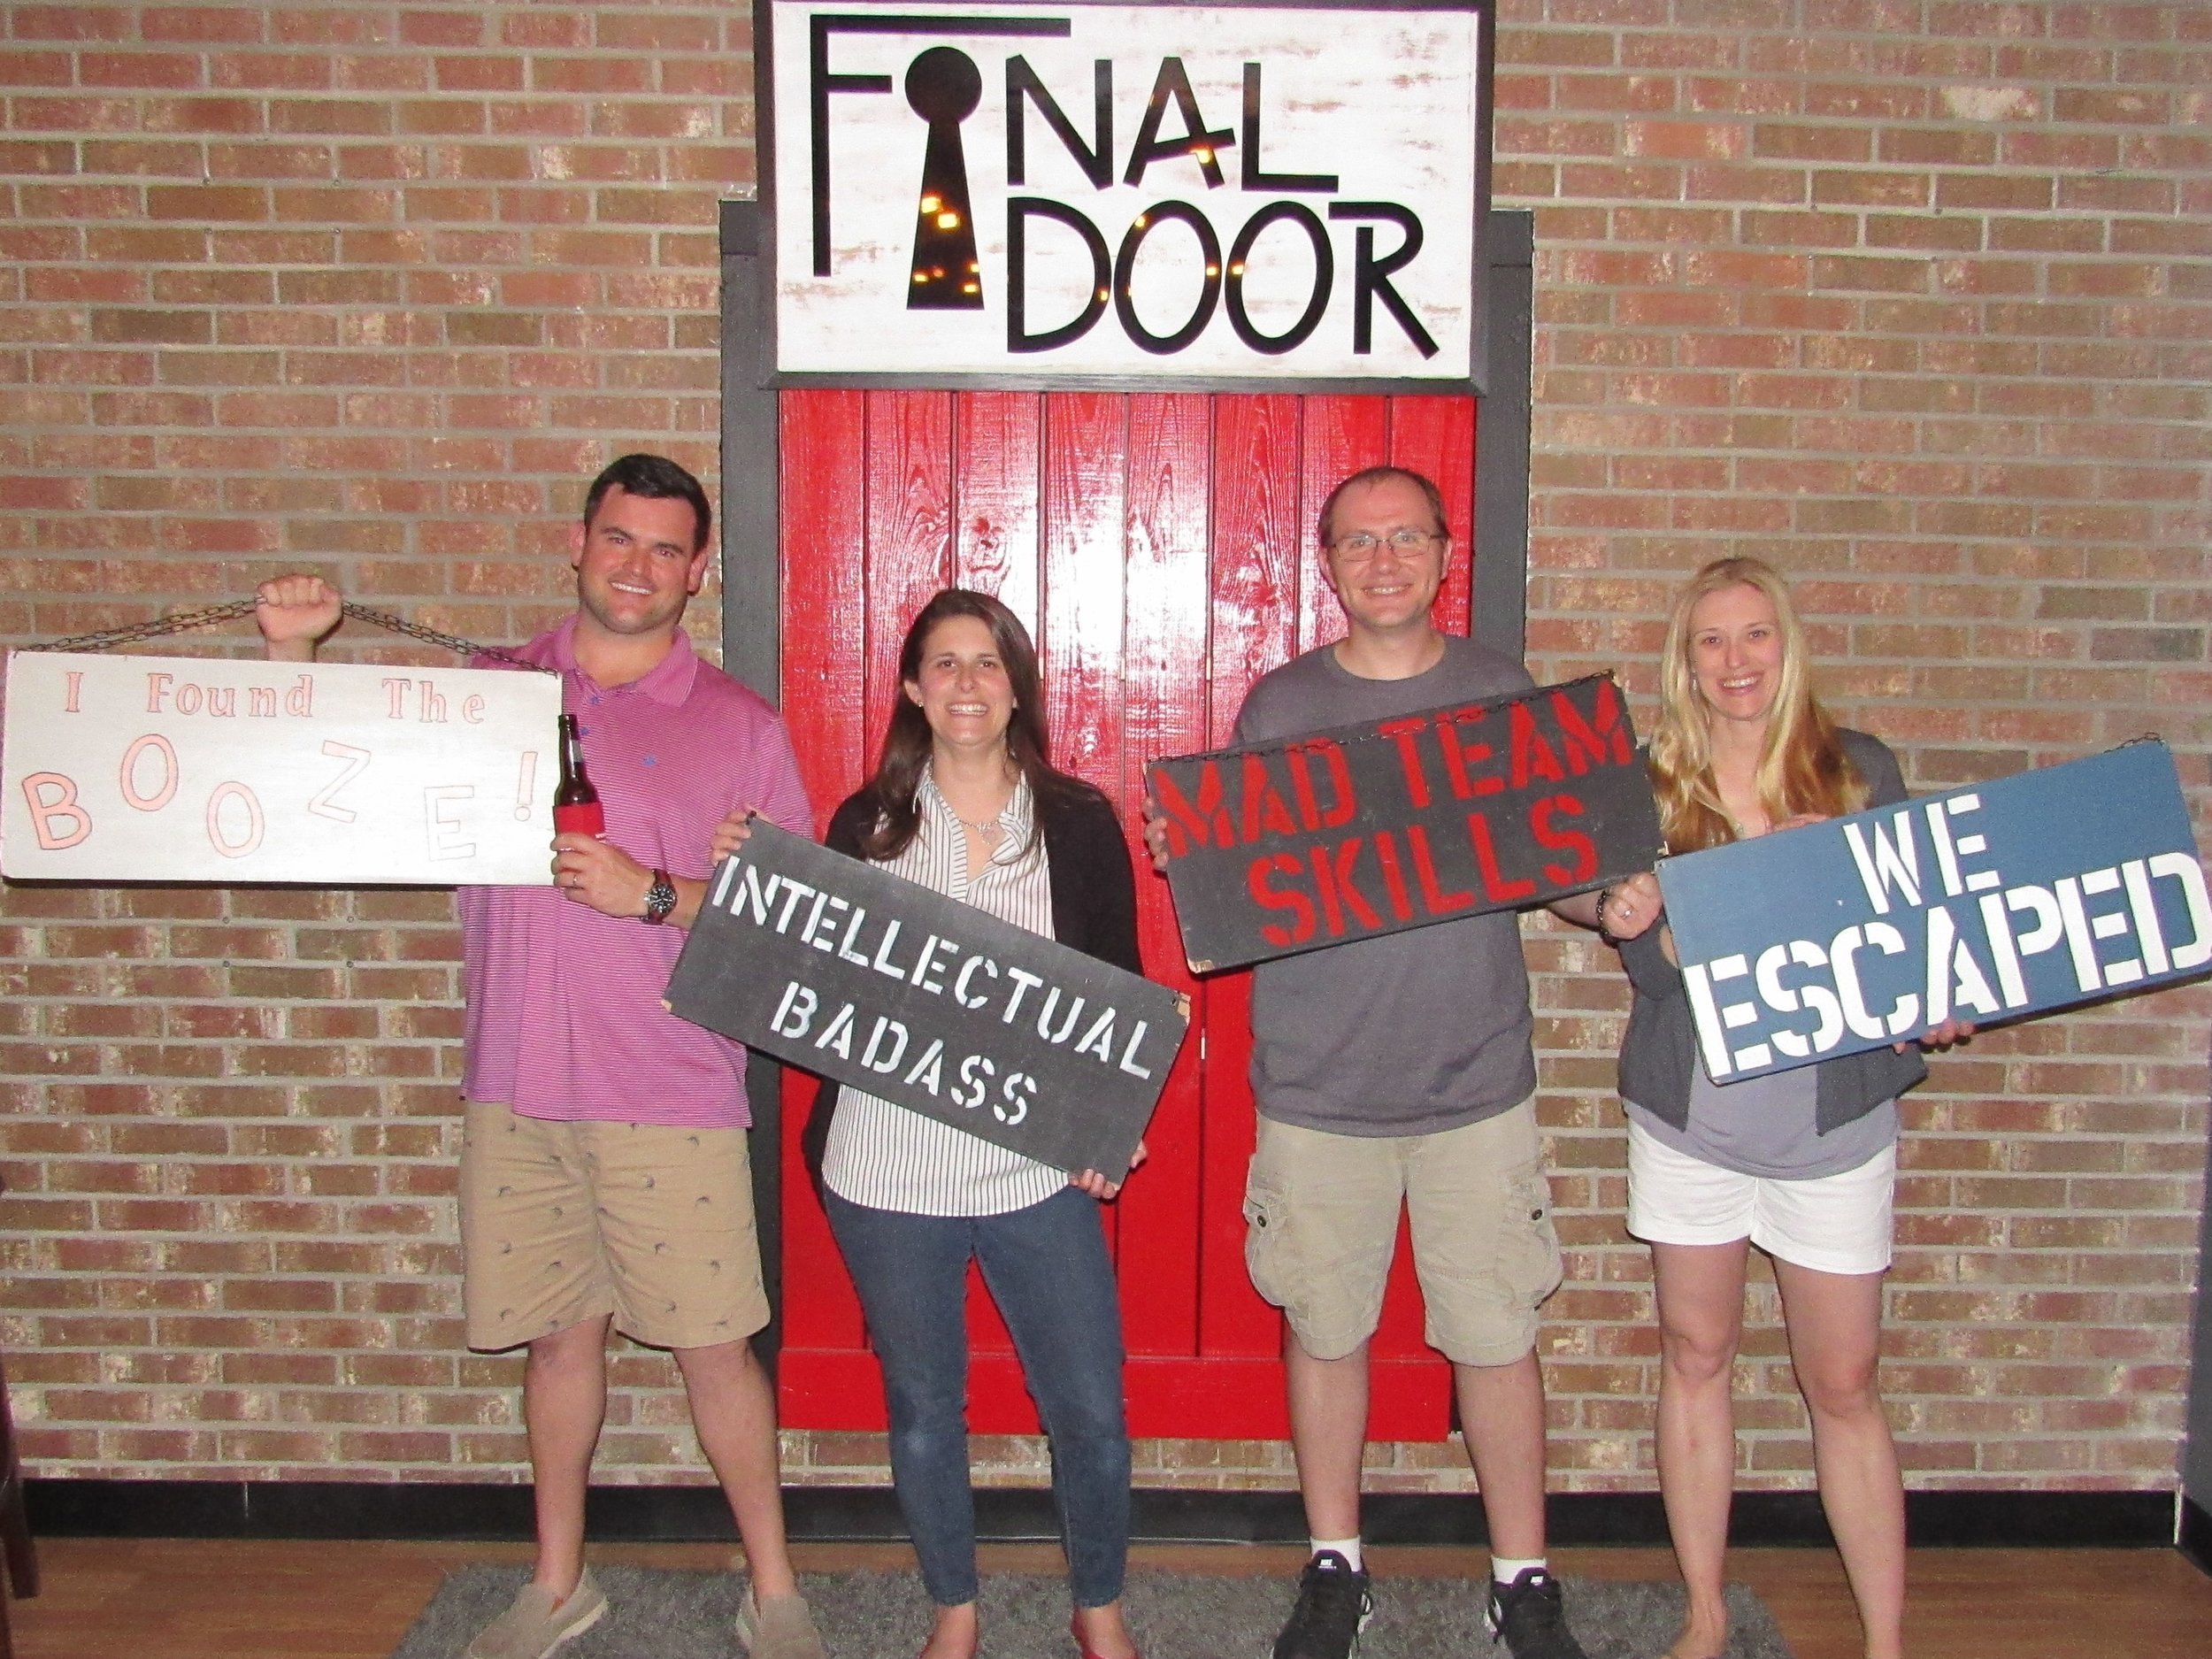 the-final-door-escape-room-columbia-sc-team-photos-april-28-2018-15.JPG